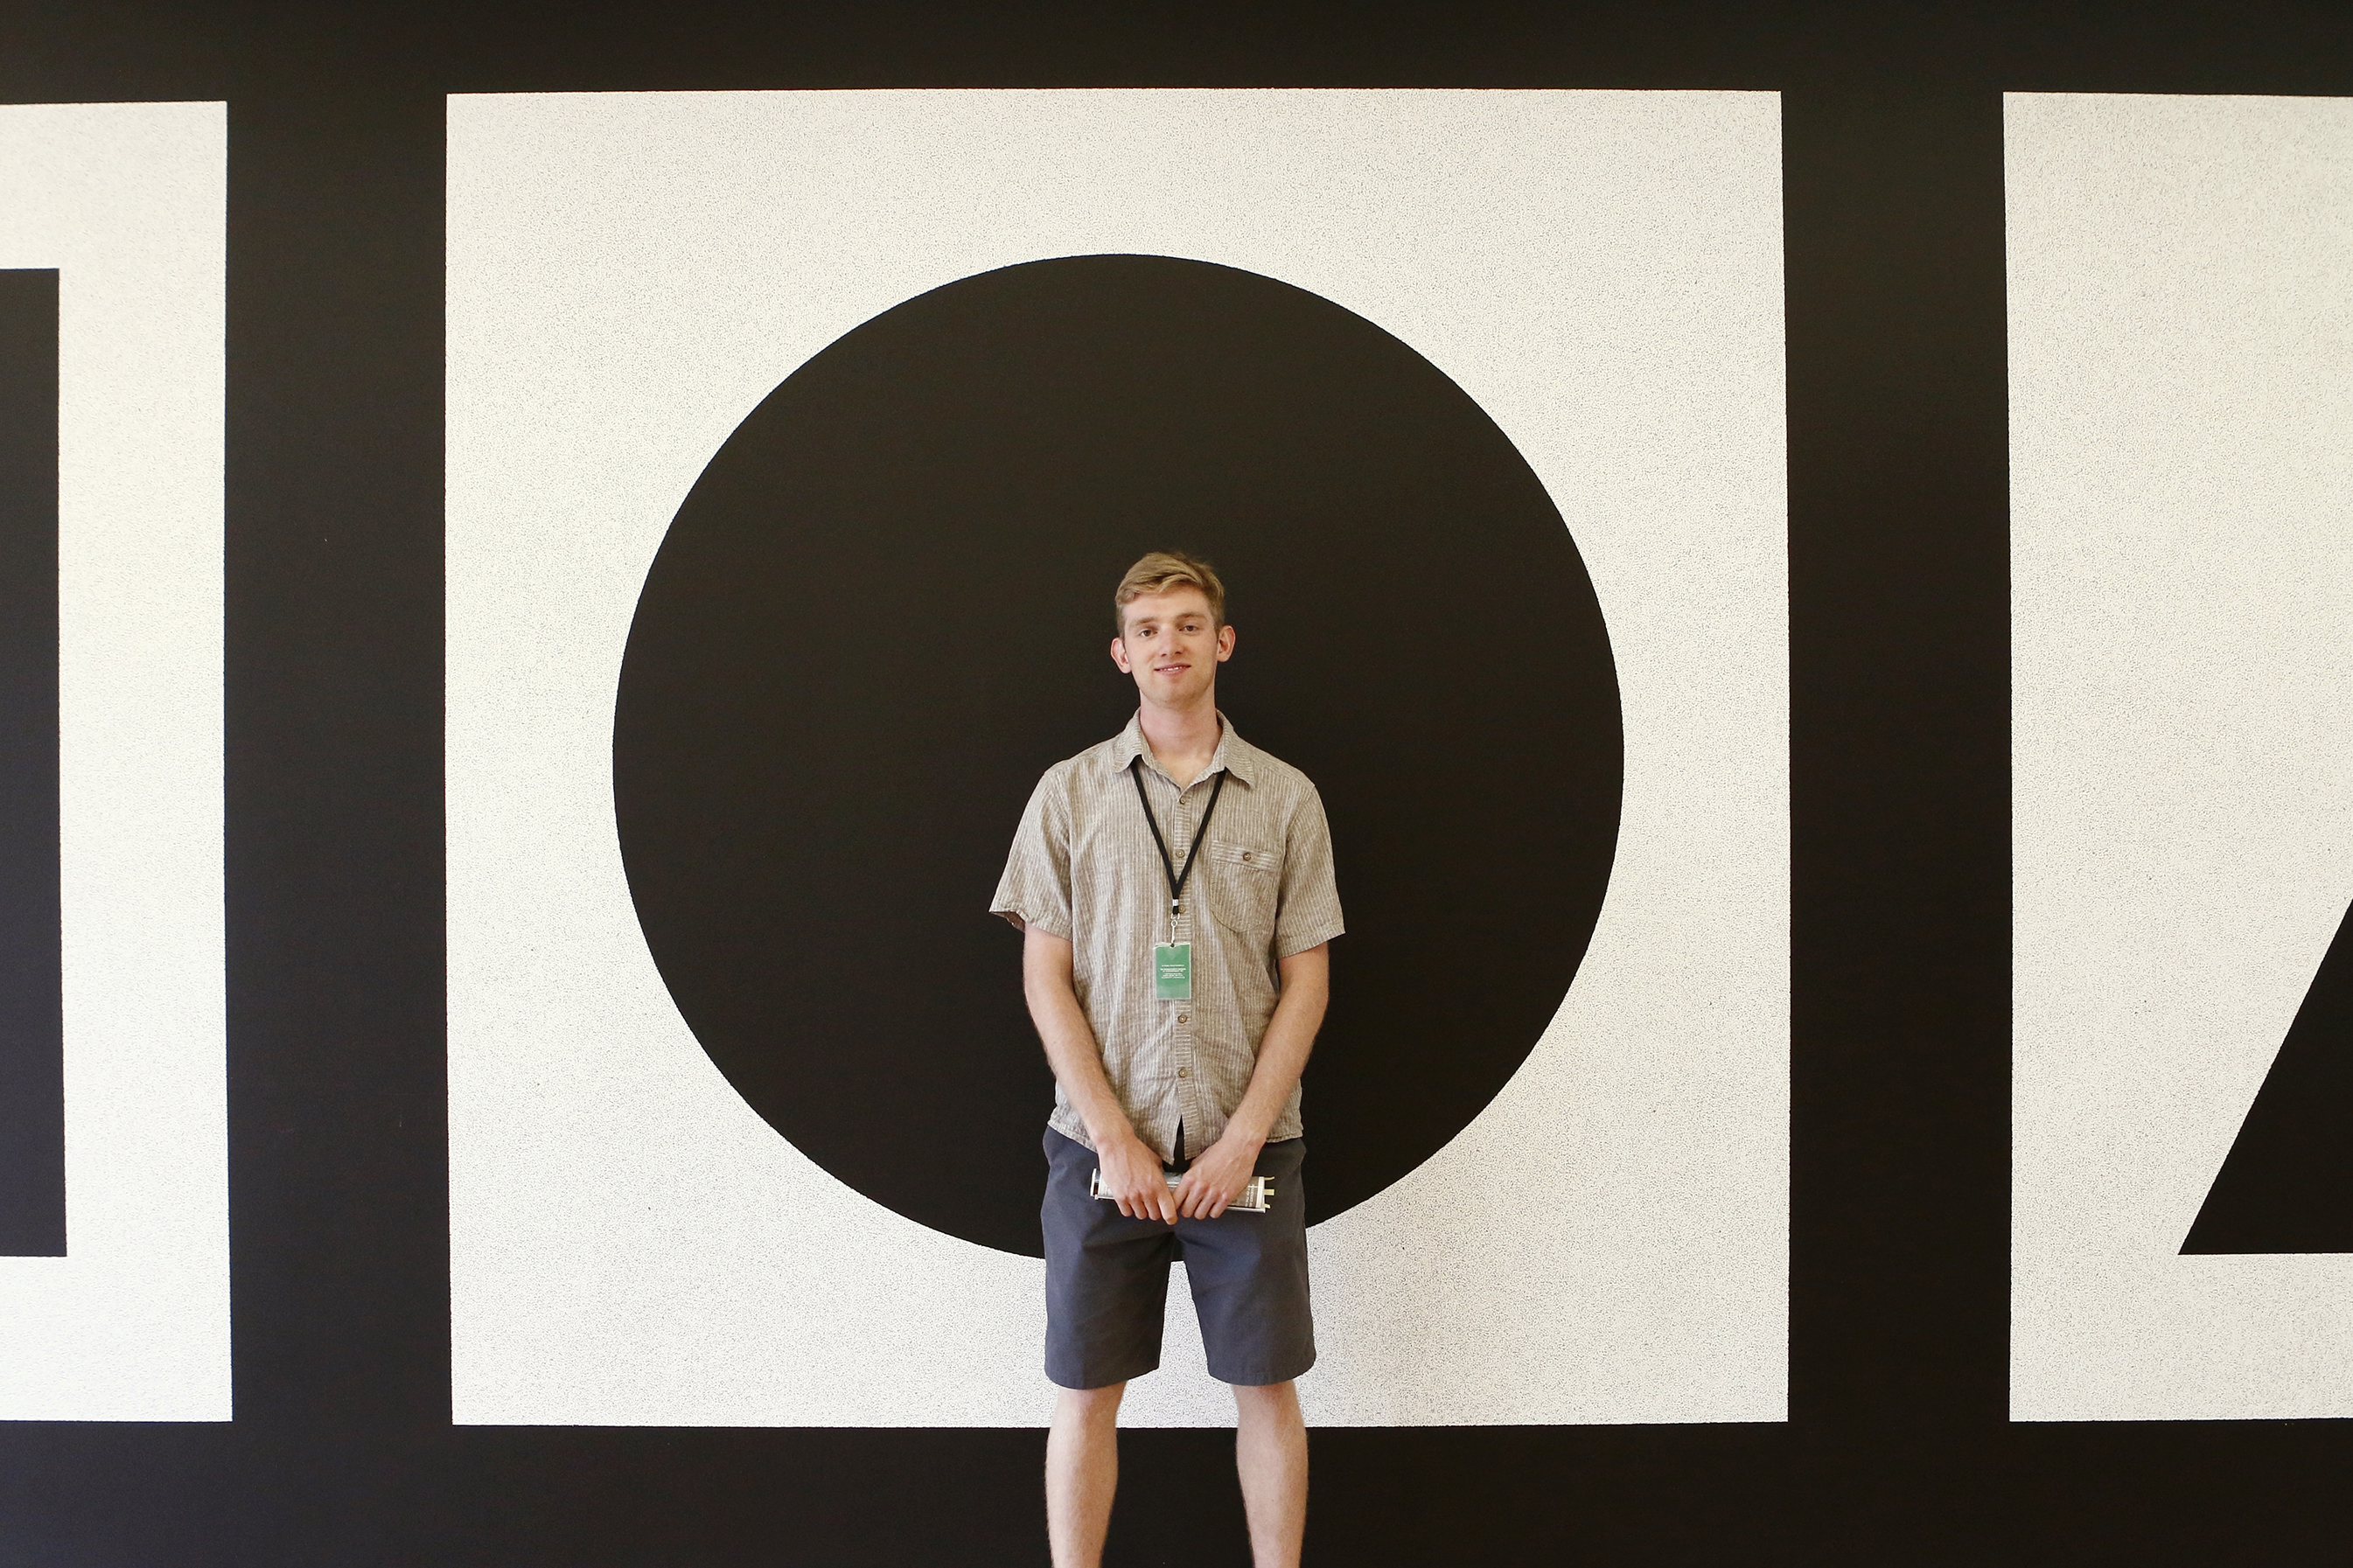 Jasper Nash '16 learns about marketing in a contemporary art setting.